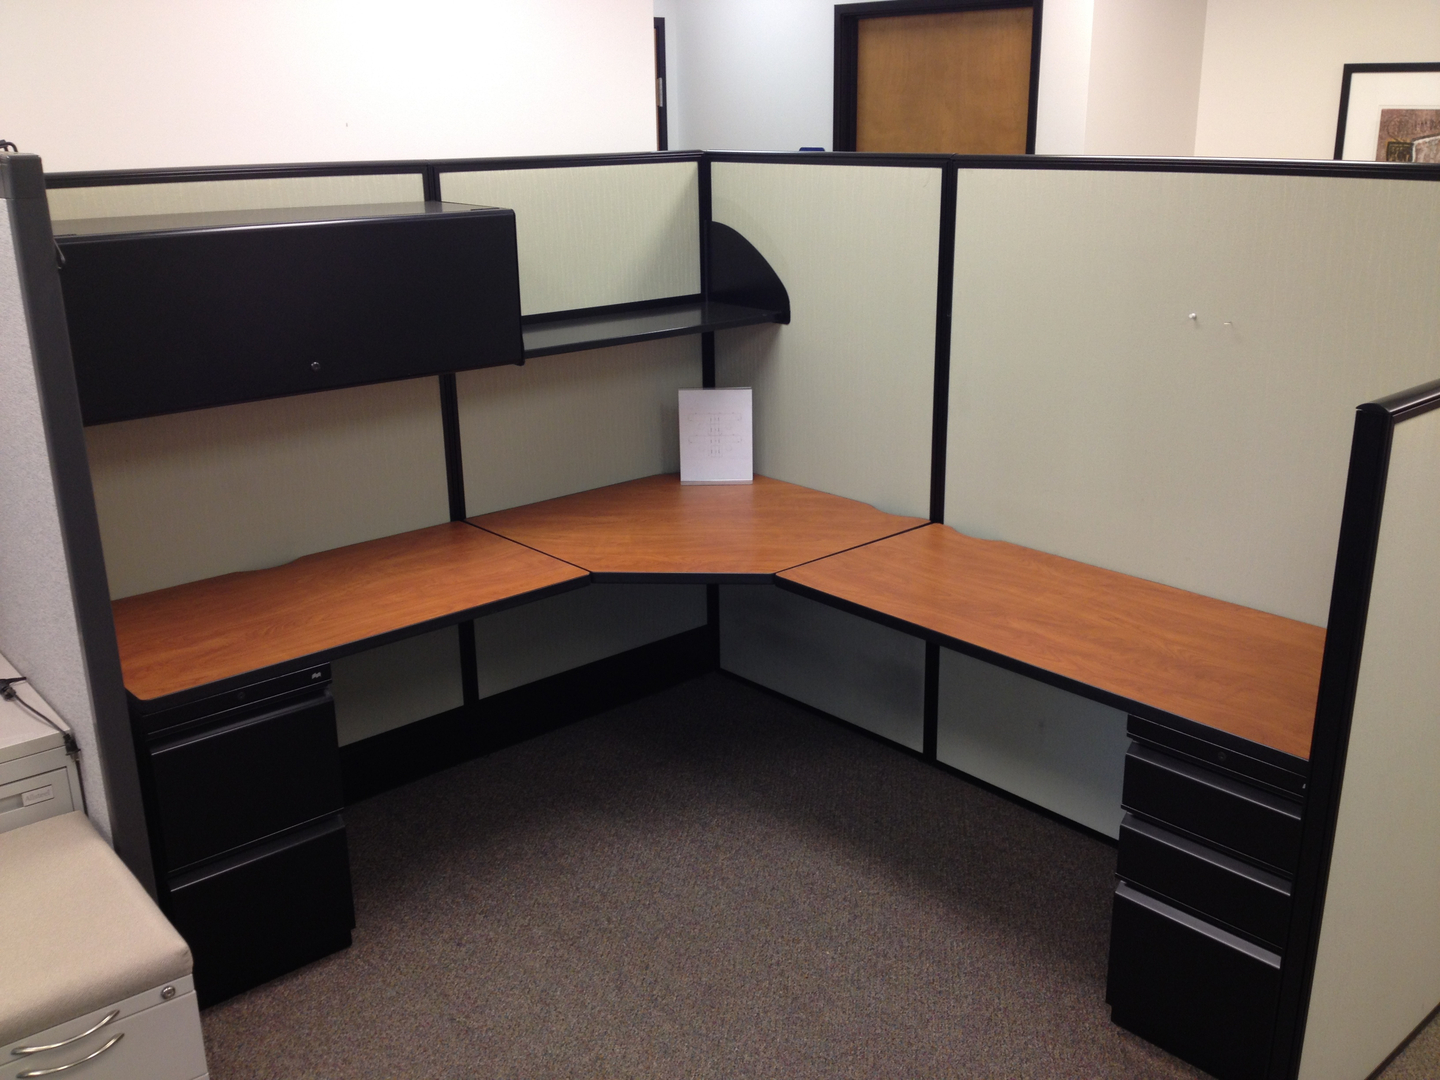 used cubicles, used office cubicles - strictly business - portland, or